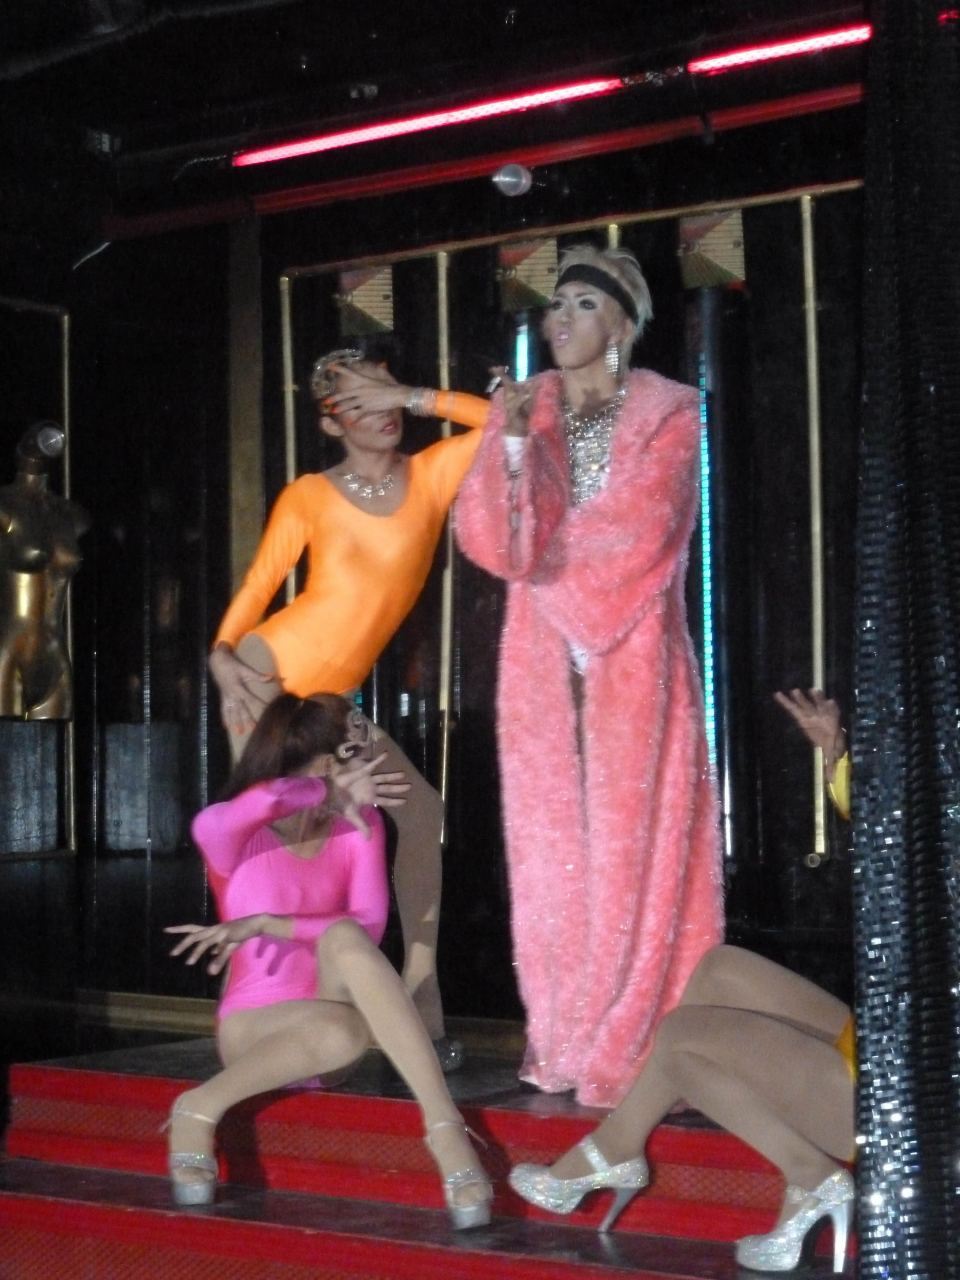 Thailand Ladyboys Interview with Miss Singapore (English